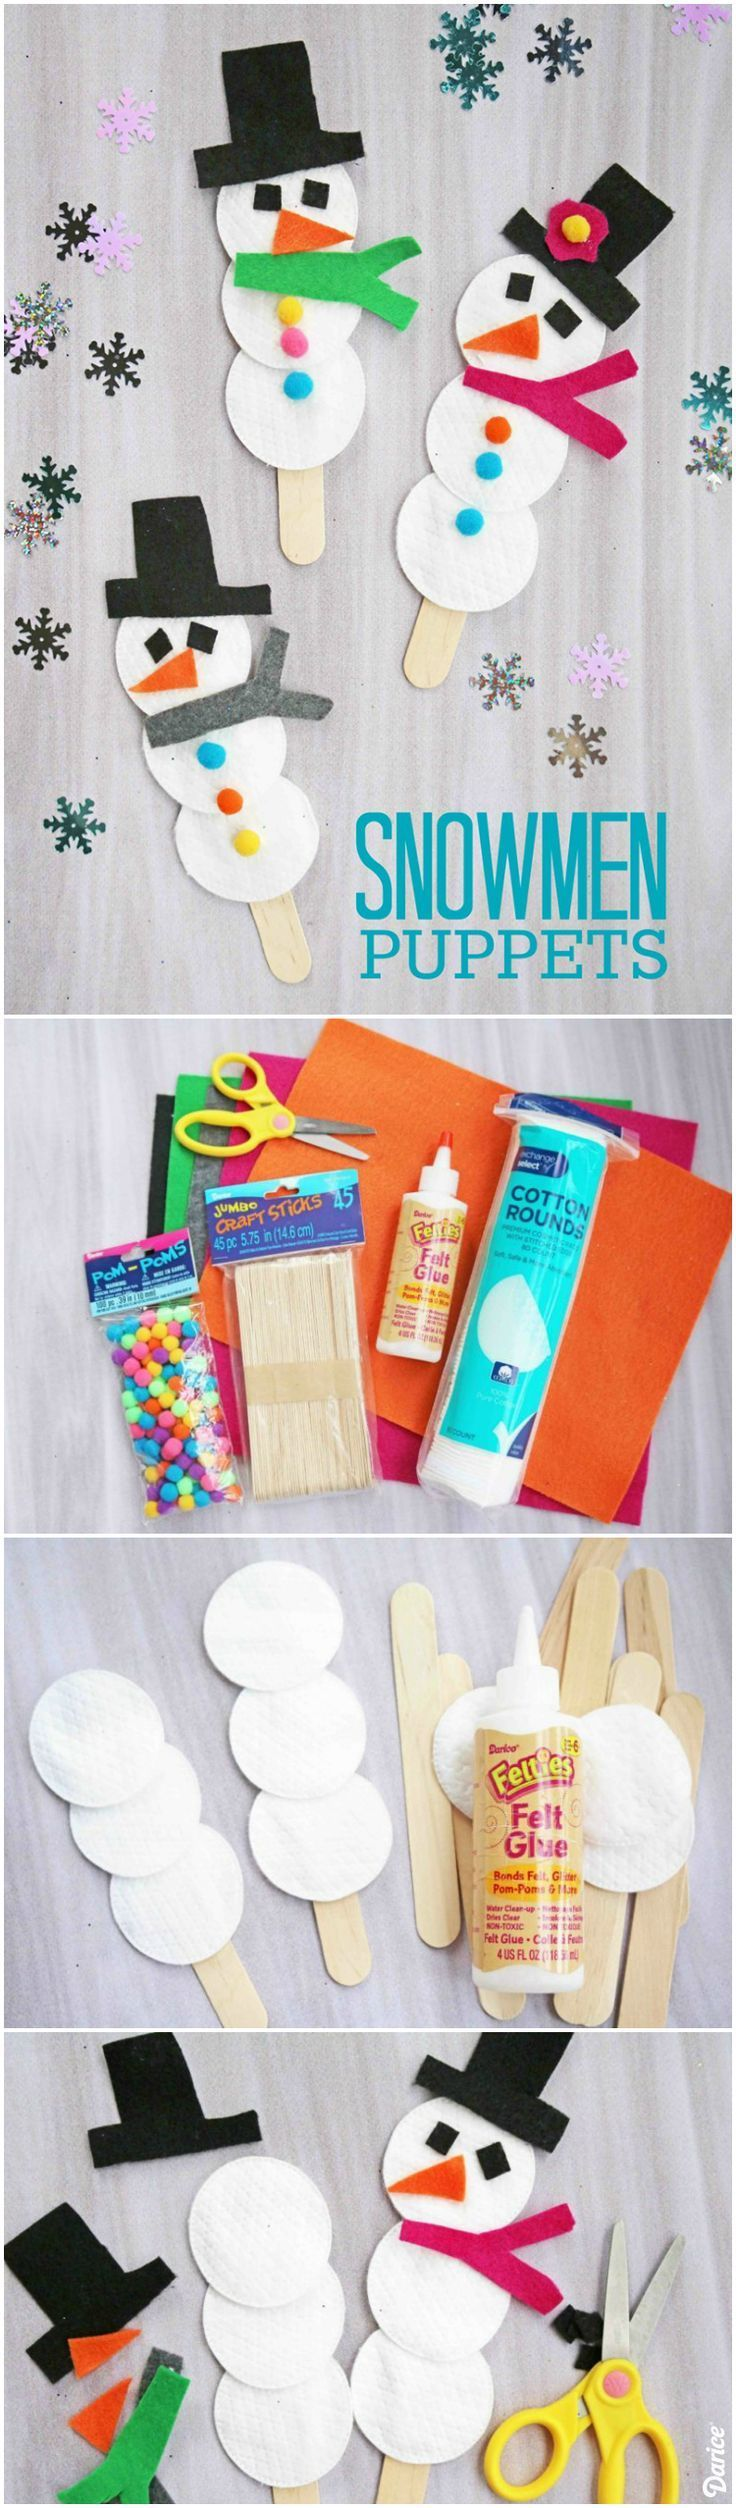 Photo of Snowman Puppet Easy Winter Craft for Kids – Darice